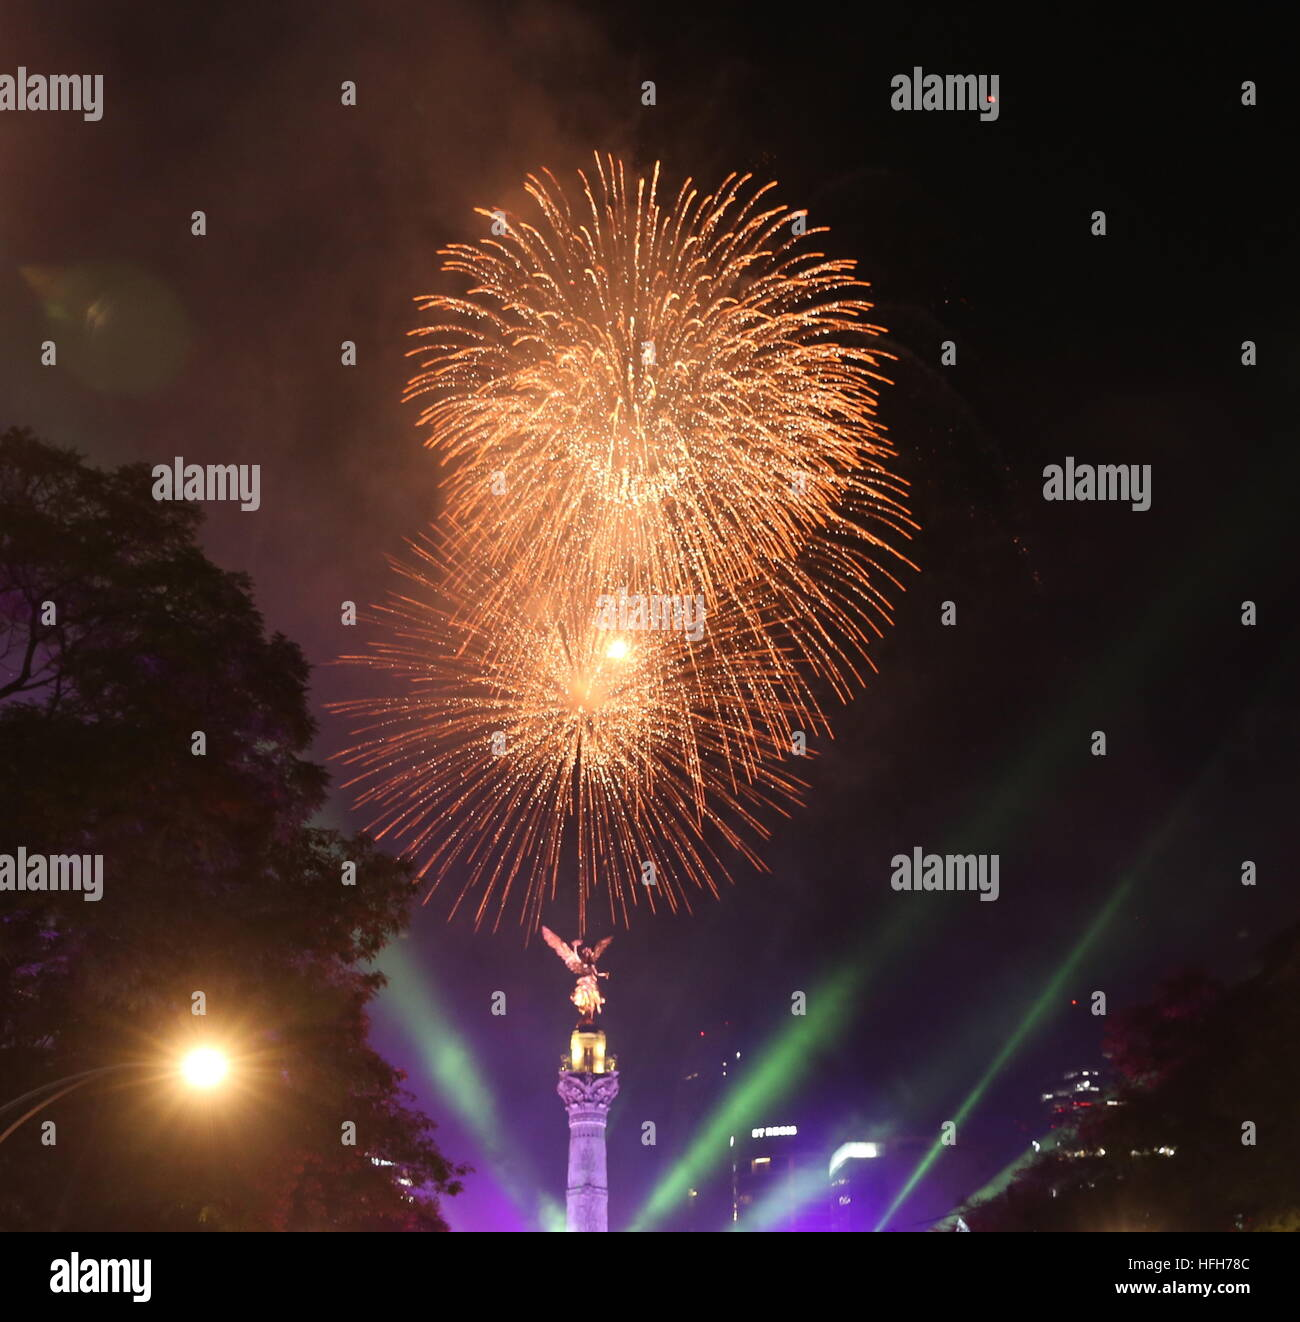 Mexico City  Mexico  1st Jan  2017  Fireworks are seen during New     Mexico City  Mexico  1st Jan  2017  Fireworks are seen during New Year  celebration in Mexico City  capital of Mexico  Jan  1  2017